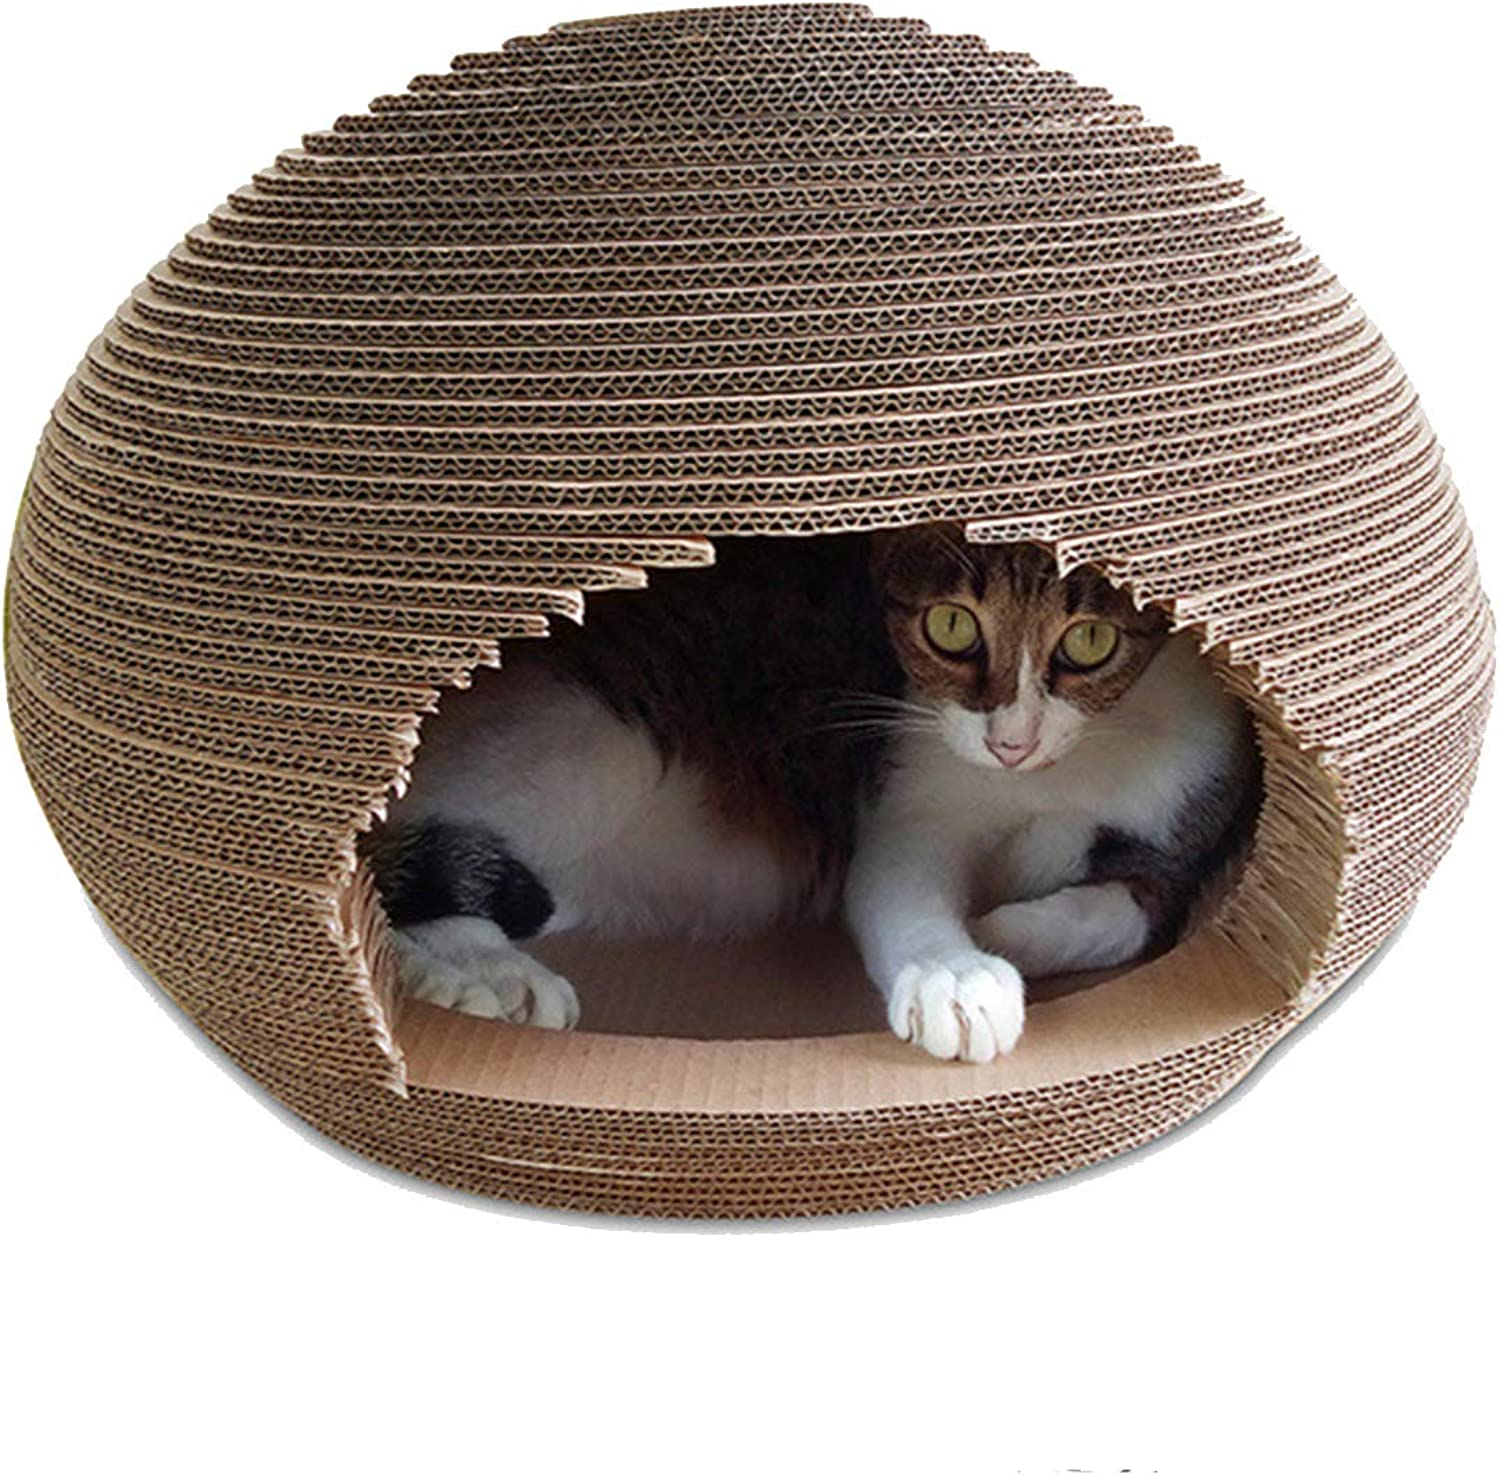 Corrugated Cat House Cat Furniture Sphere Cat Litter Cat Scratch Board Cat Claw Toy Cat Supplies 45X45X33.5cm